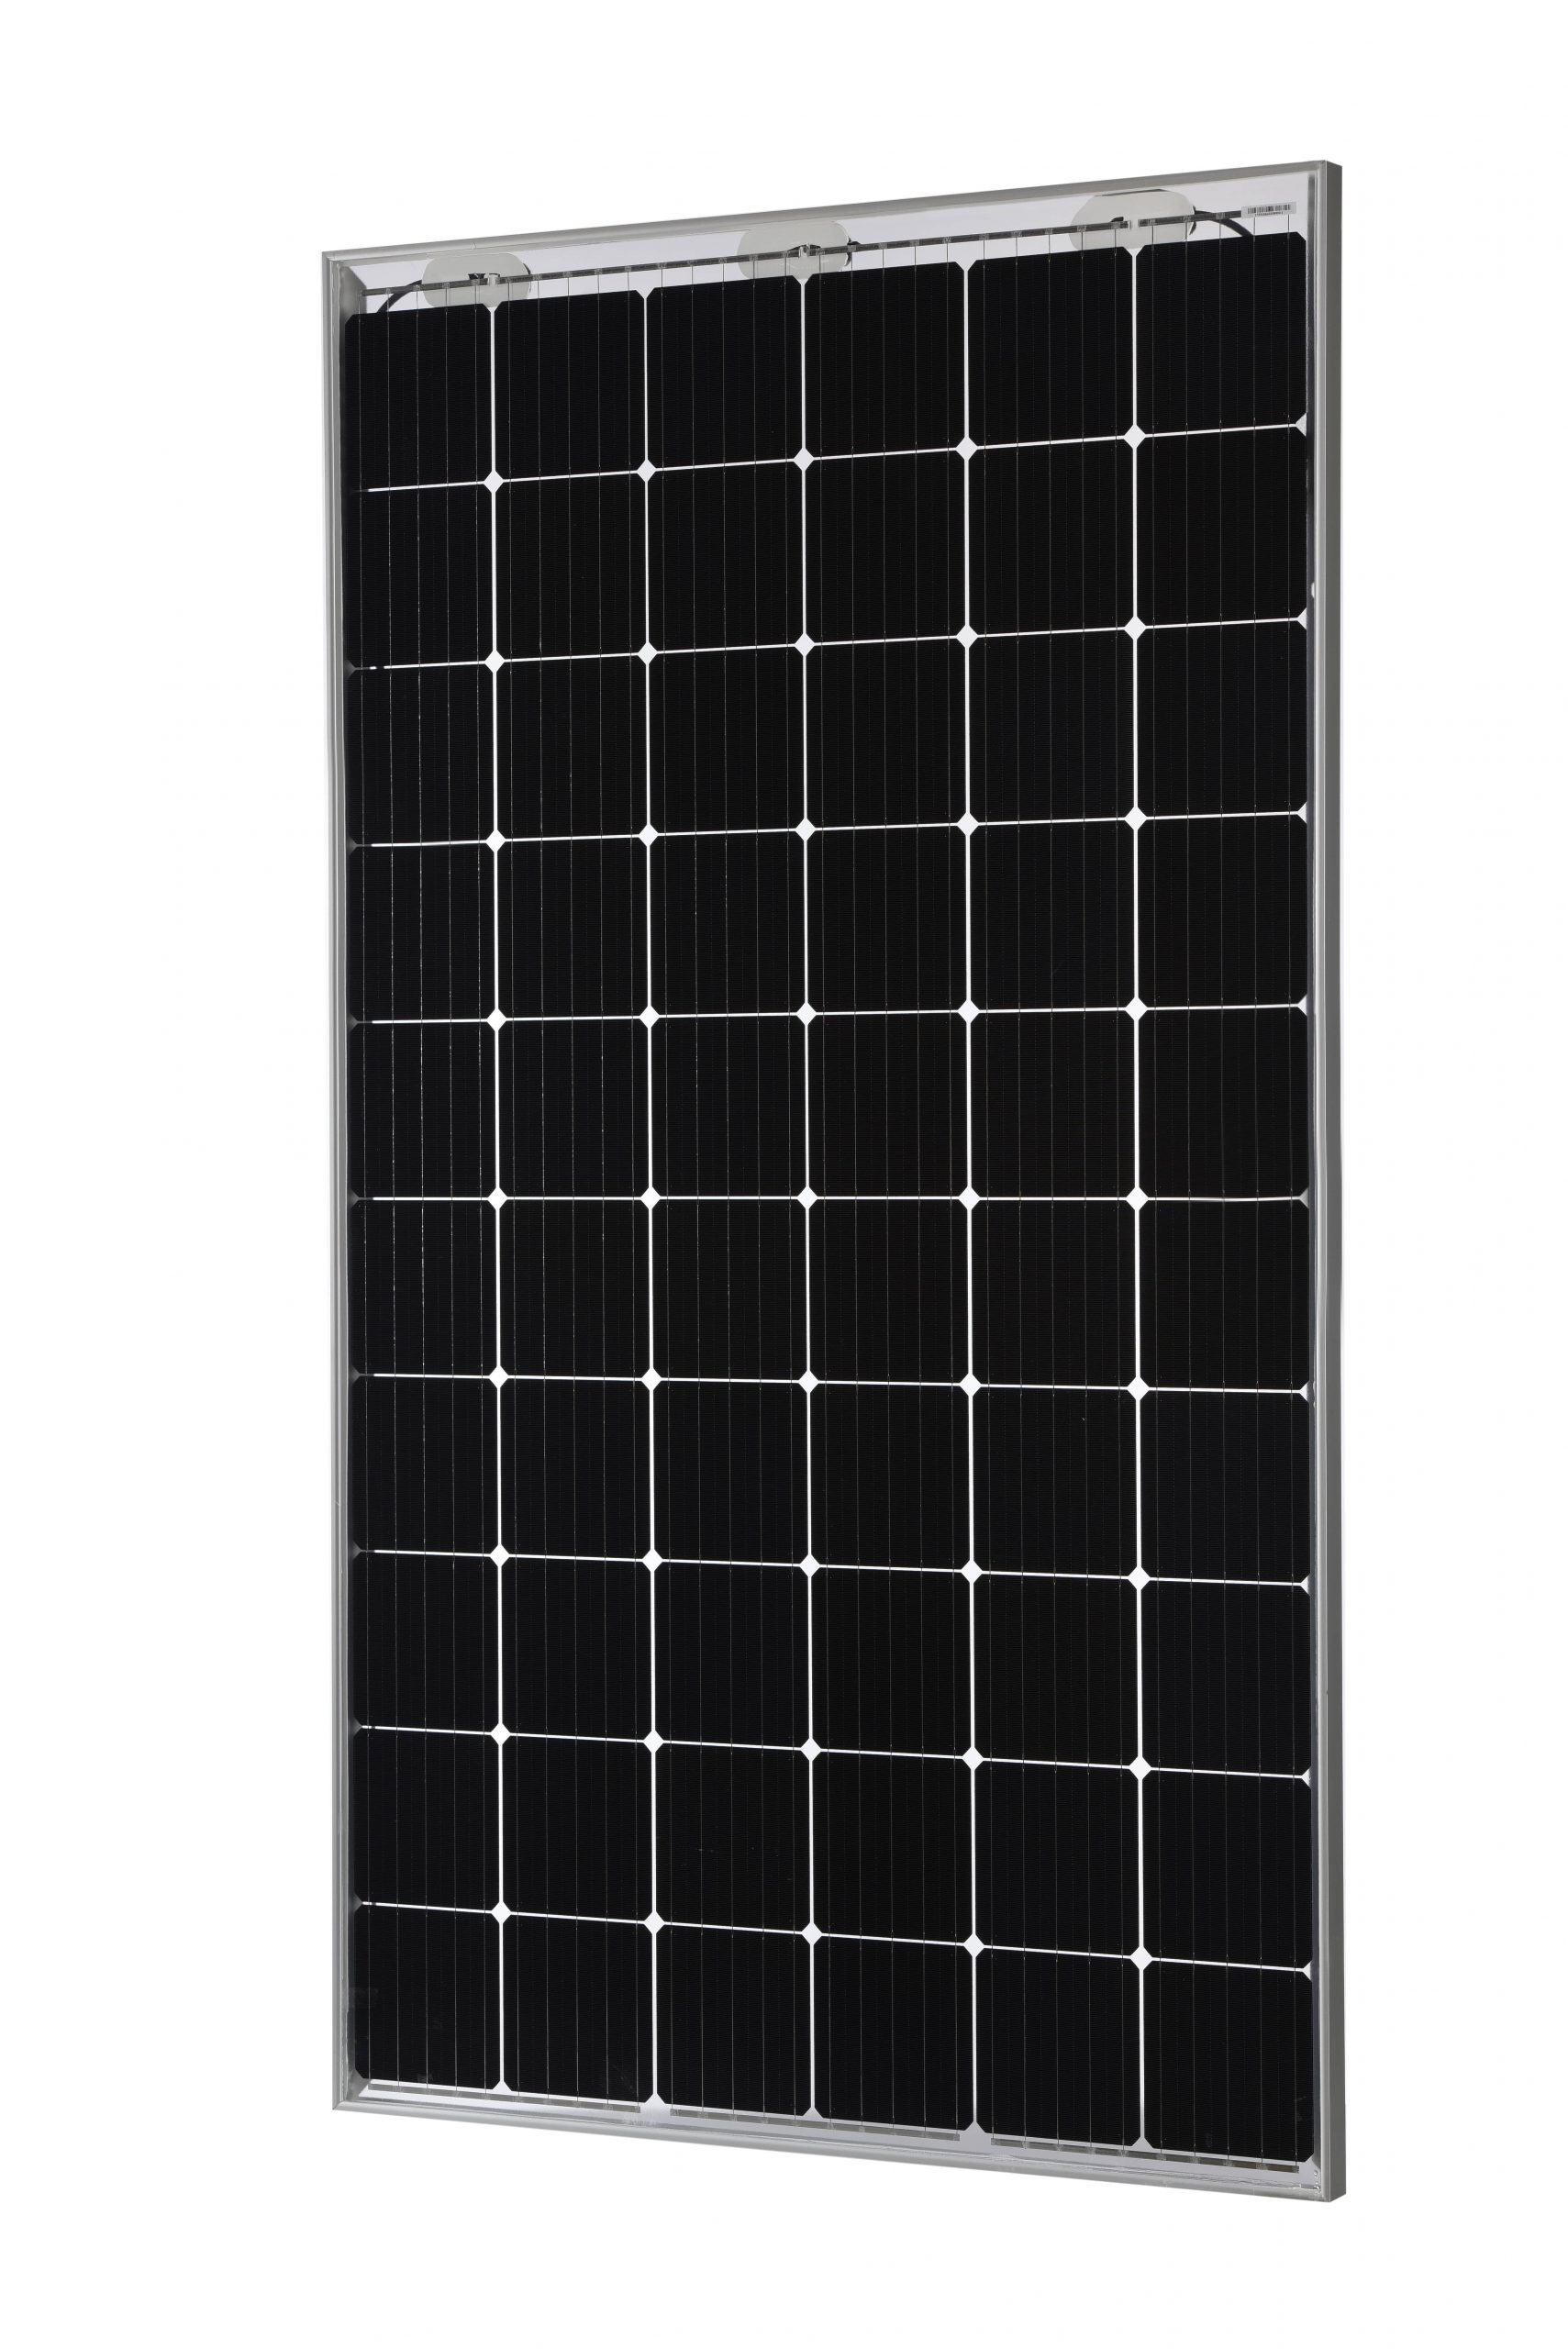 JA Solar Bifacial Double-glass Modules Increases Energy Yield by 23% in Comparison Test Conducted by TÜV Rheinland